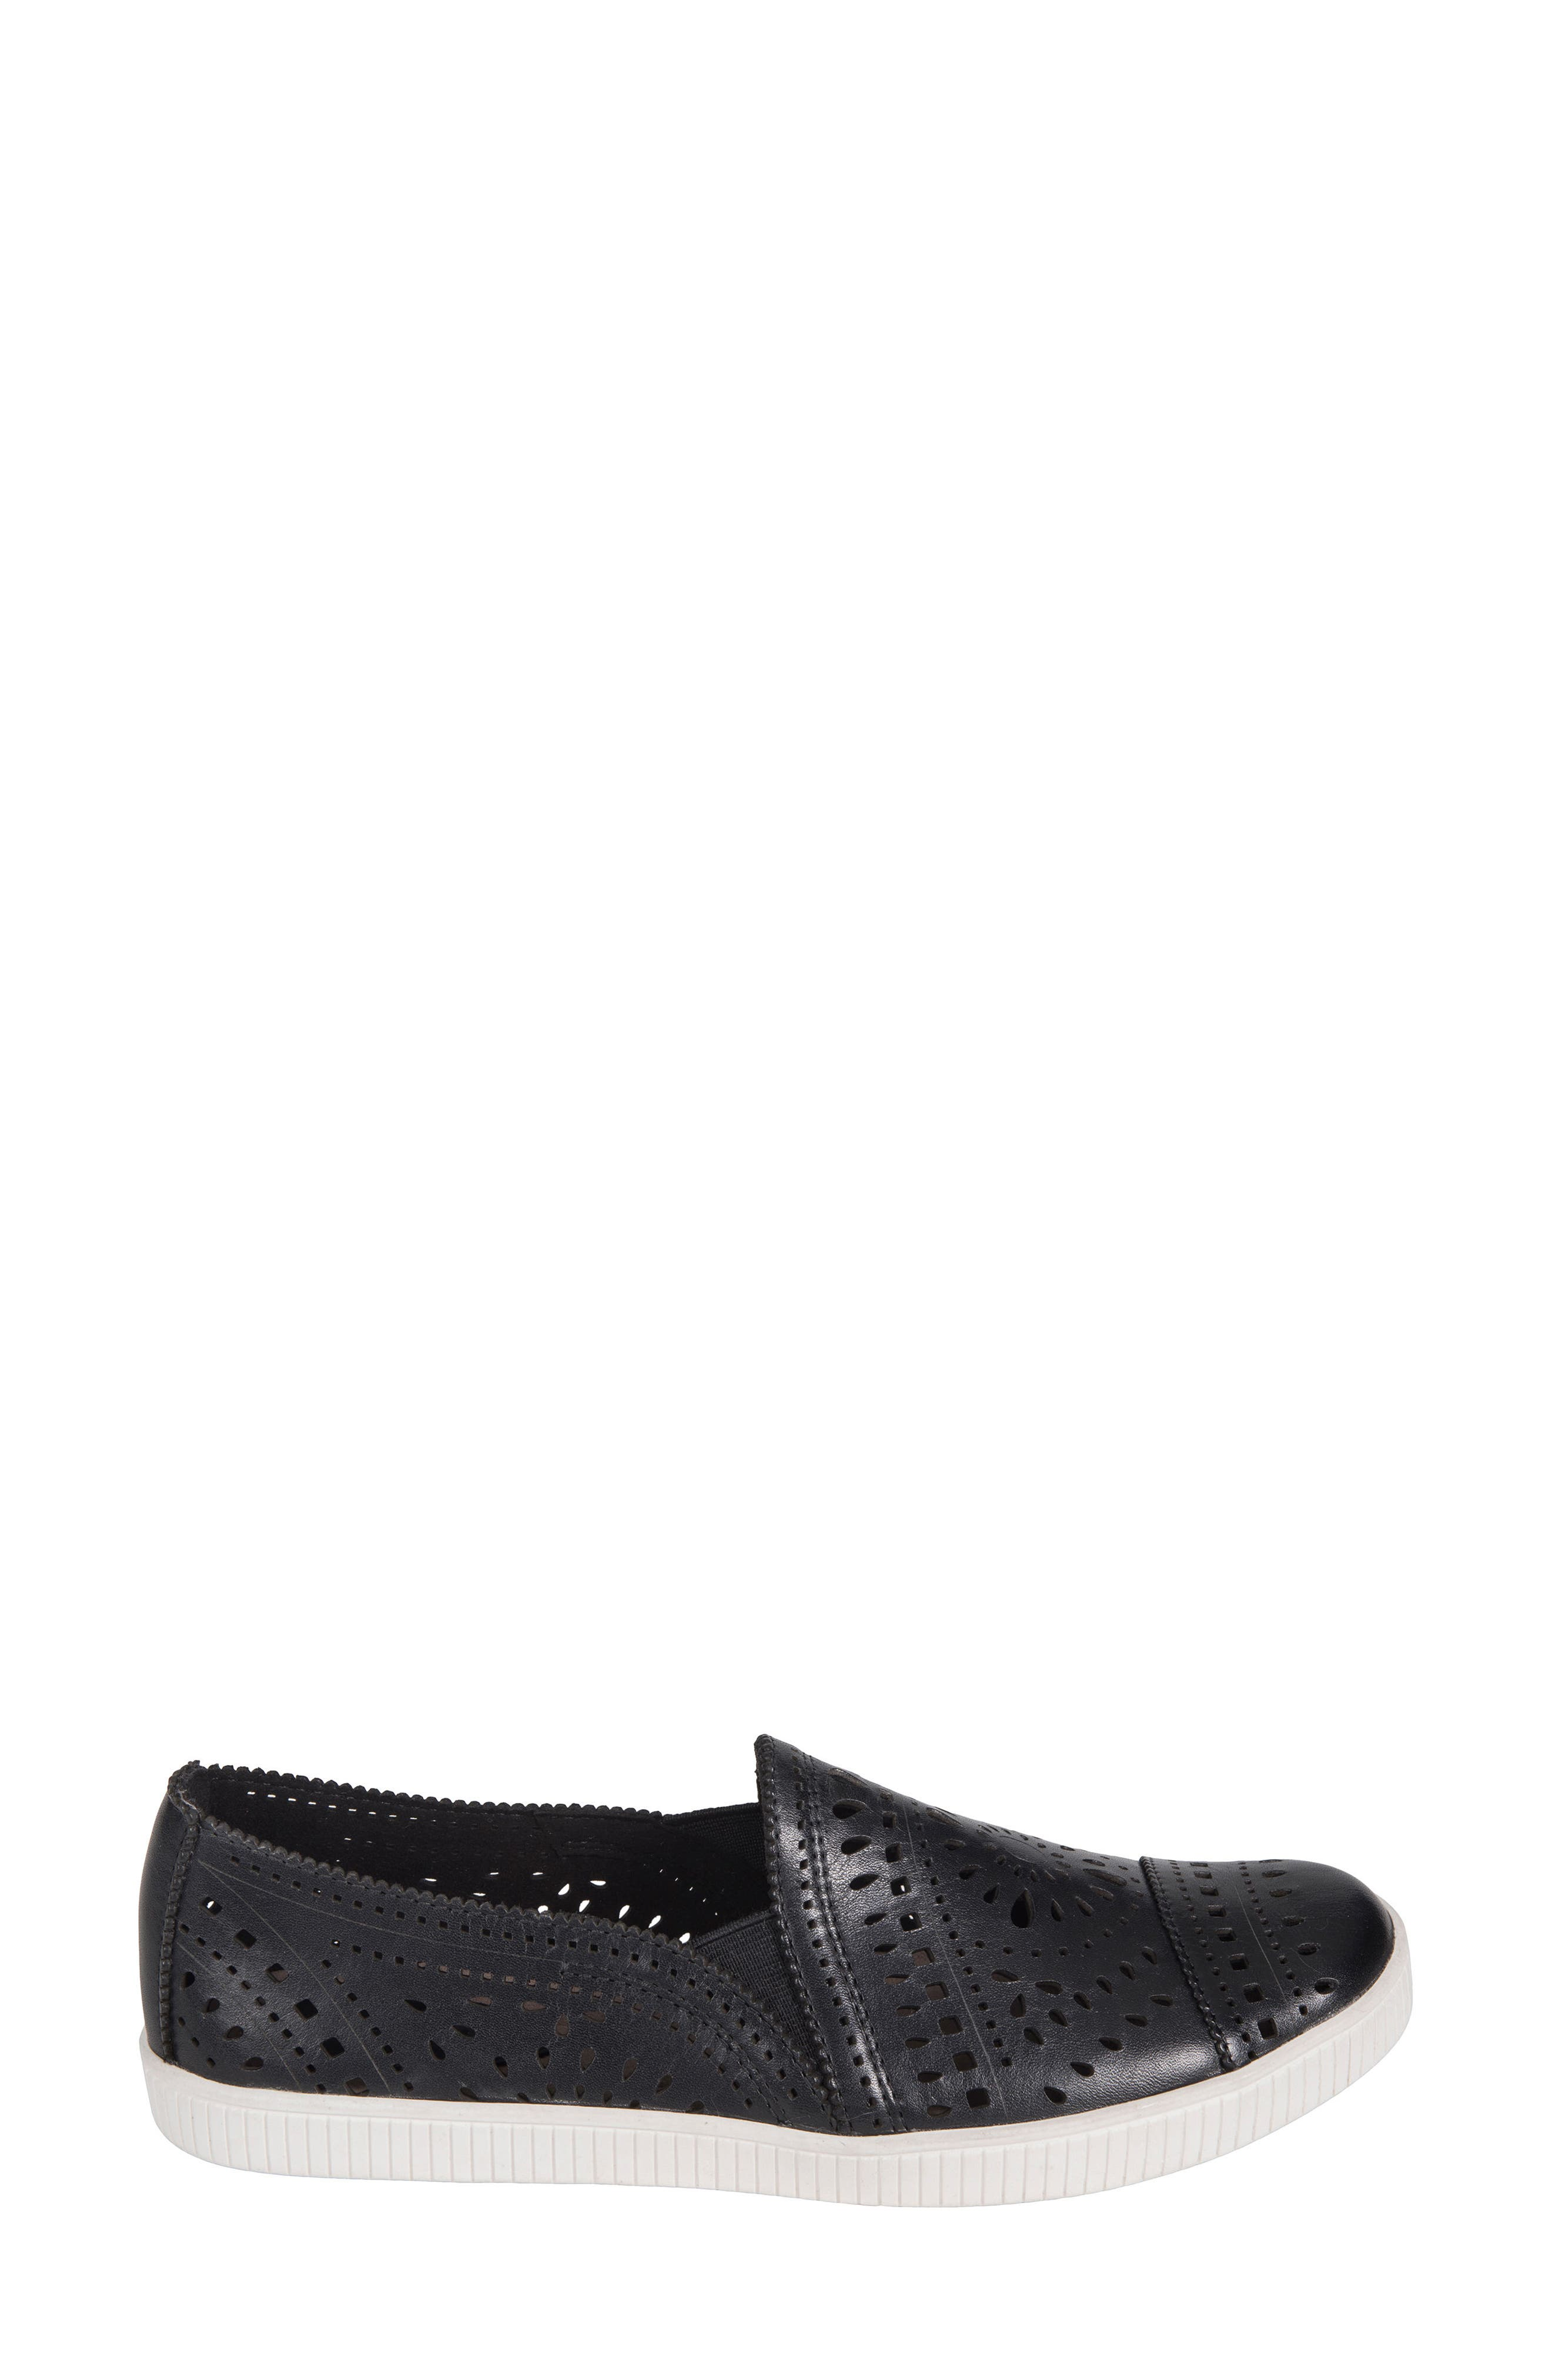 Tayberry Perforated Slip-On Sneaker,                             Alternate thumbnail 3, color,                             001